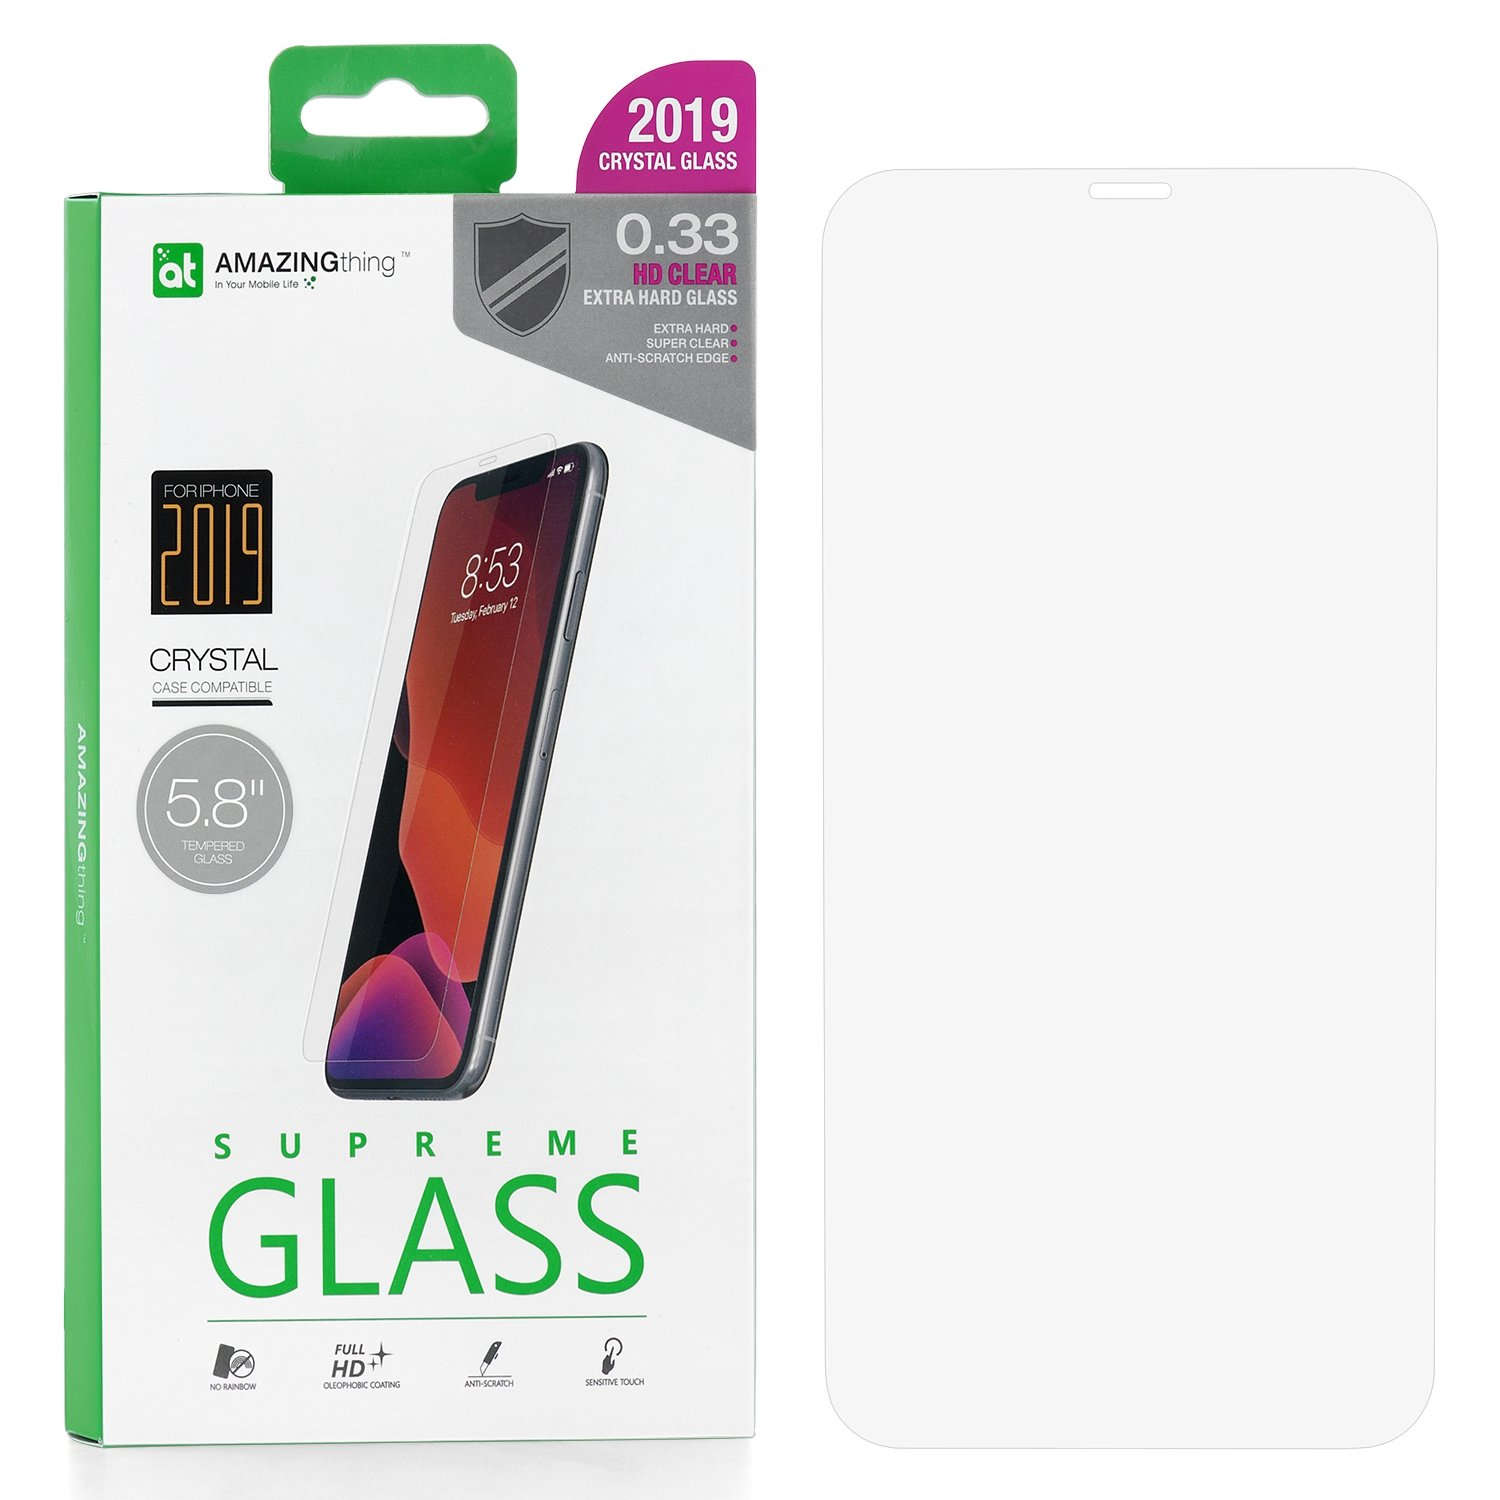 Защитное стекло AMAZINGthing SupremeGlass Extra Hard 0.33mm для Apple iPhone X